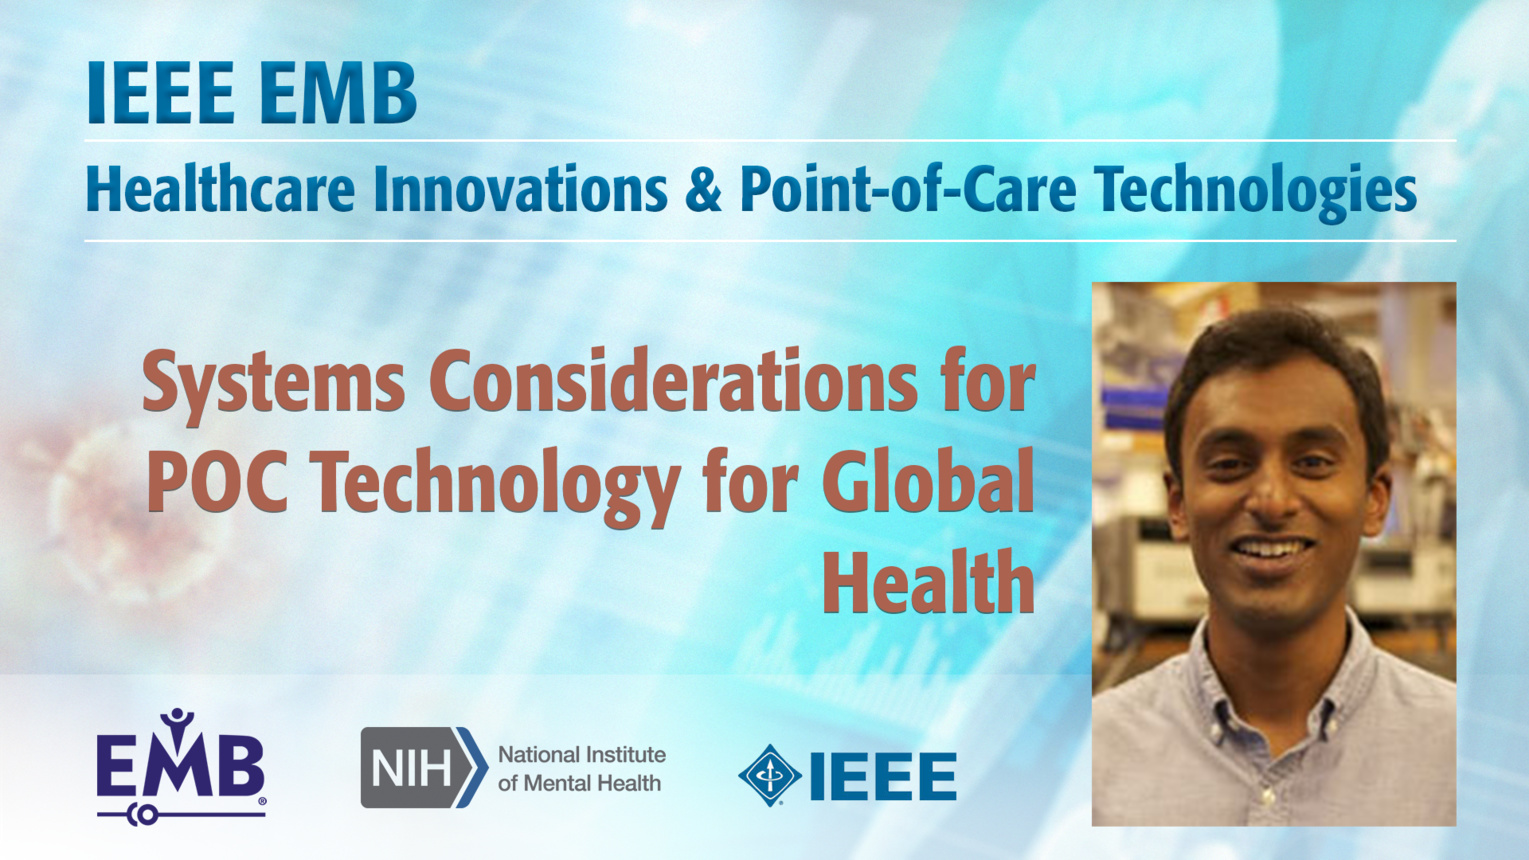 Systems Considerations for POC Technology for Global Health - Arunan Skandarajah - IEEE EMBS at NIH, 2019